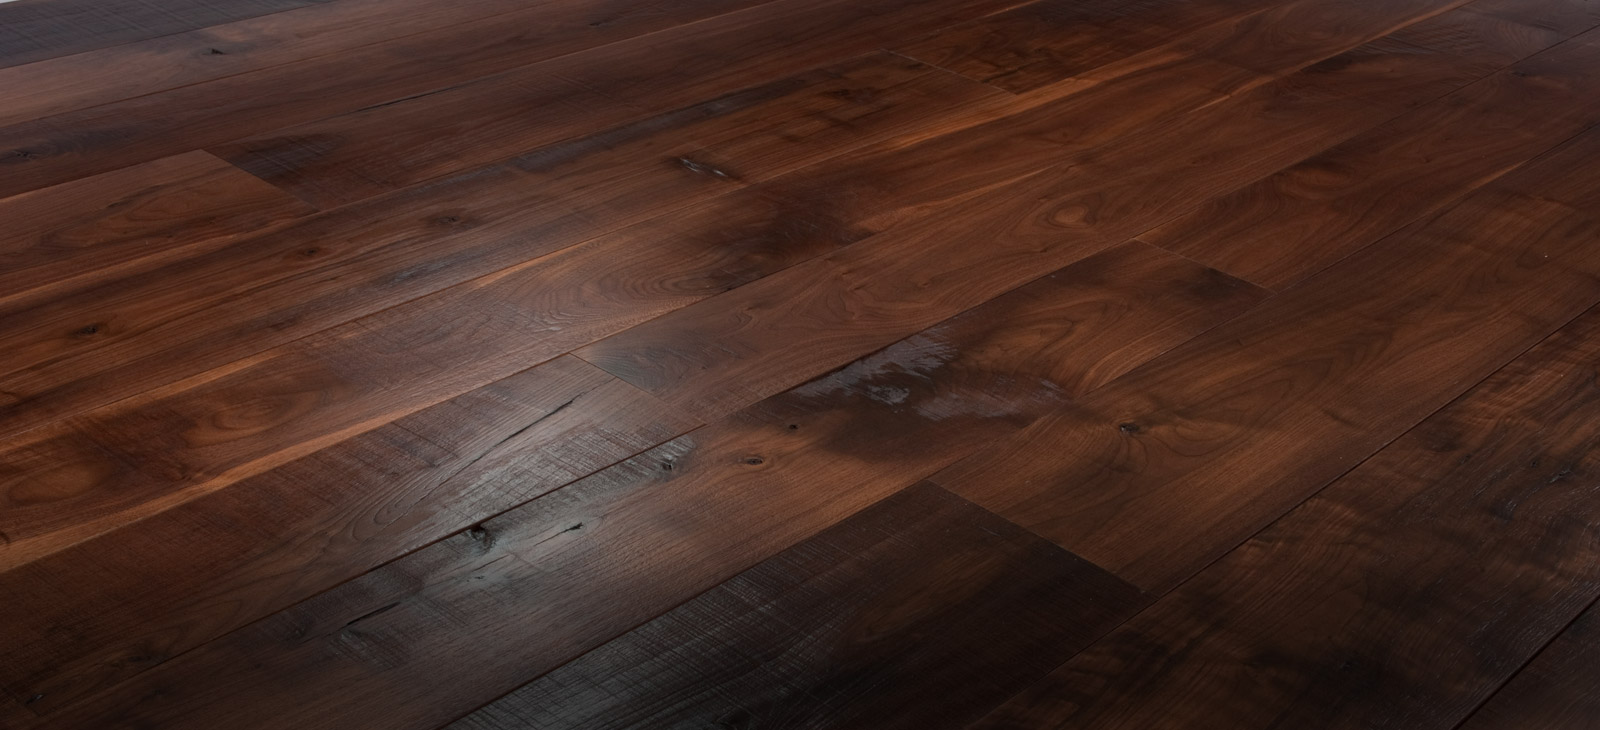 dark wood floor background. wood flooring dark floor background